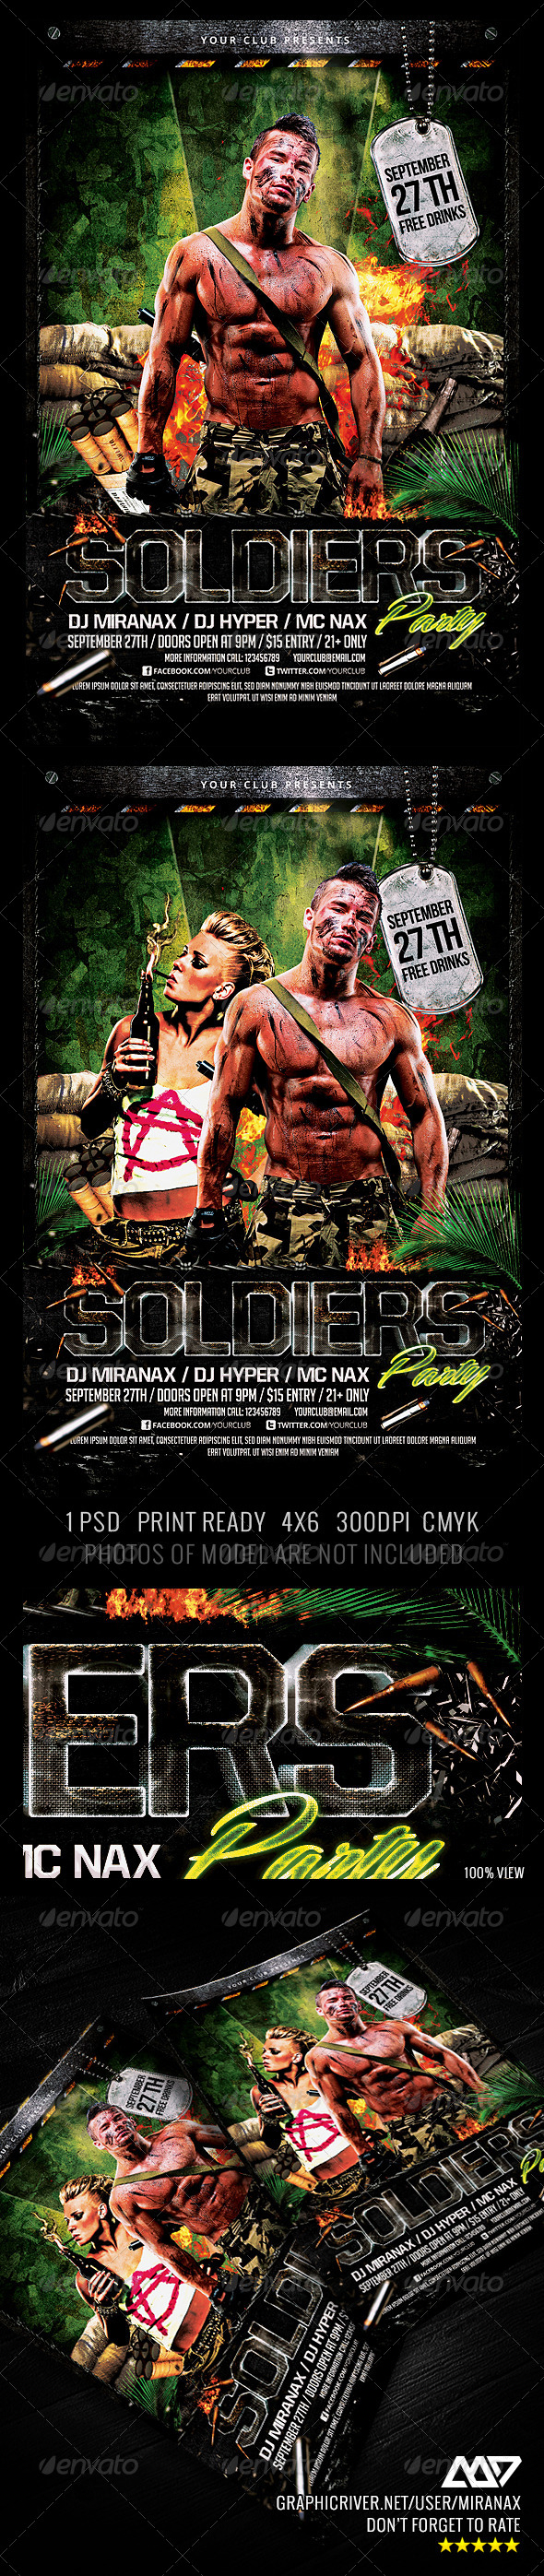 GraphicRiver Soldiers Army Military Party Flyer Template 4423332